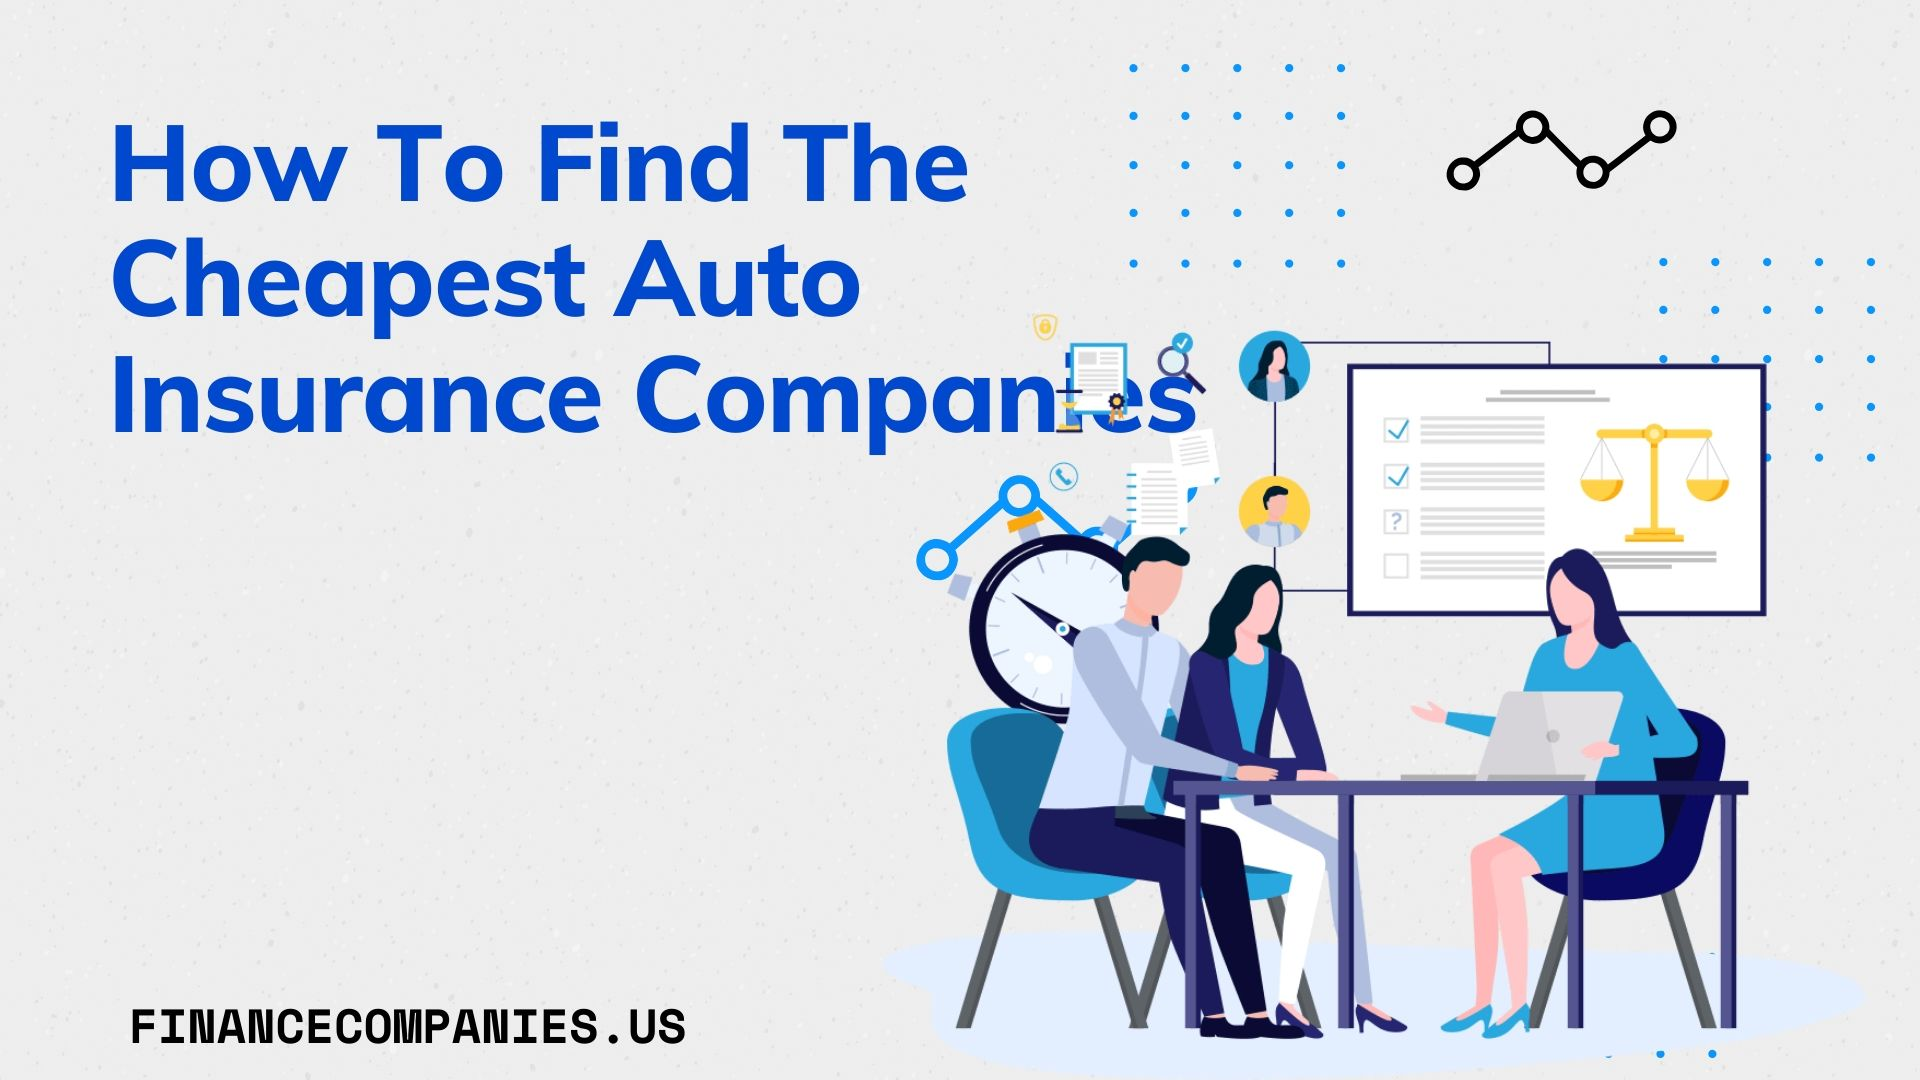 How To Find The Cheapest Auto Insurance Companies ...